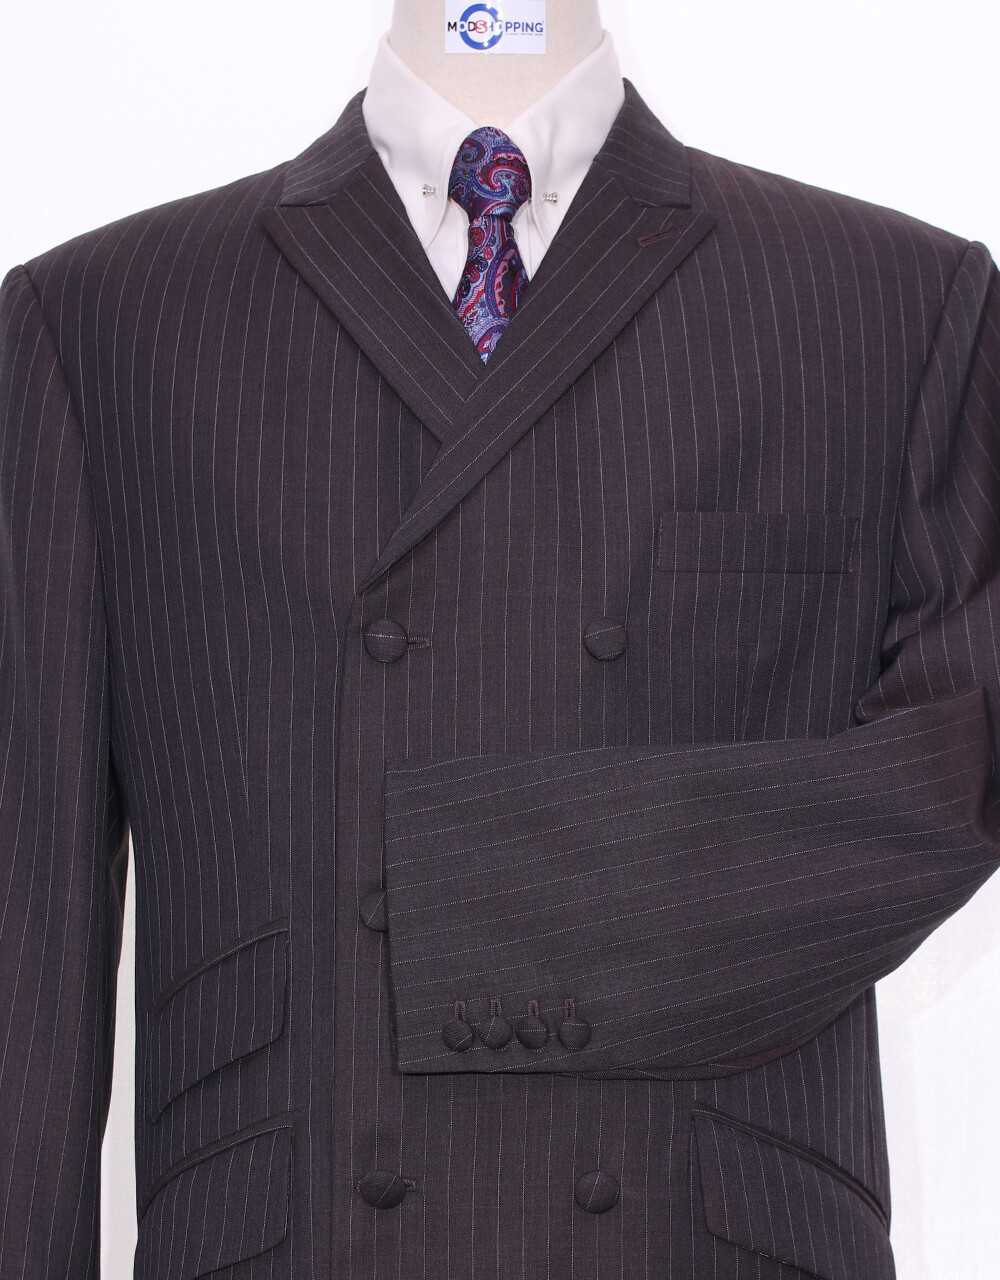 Suit Package   Double Breasted Chocolate Brown Pinstripe Suit